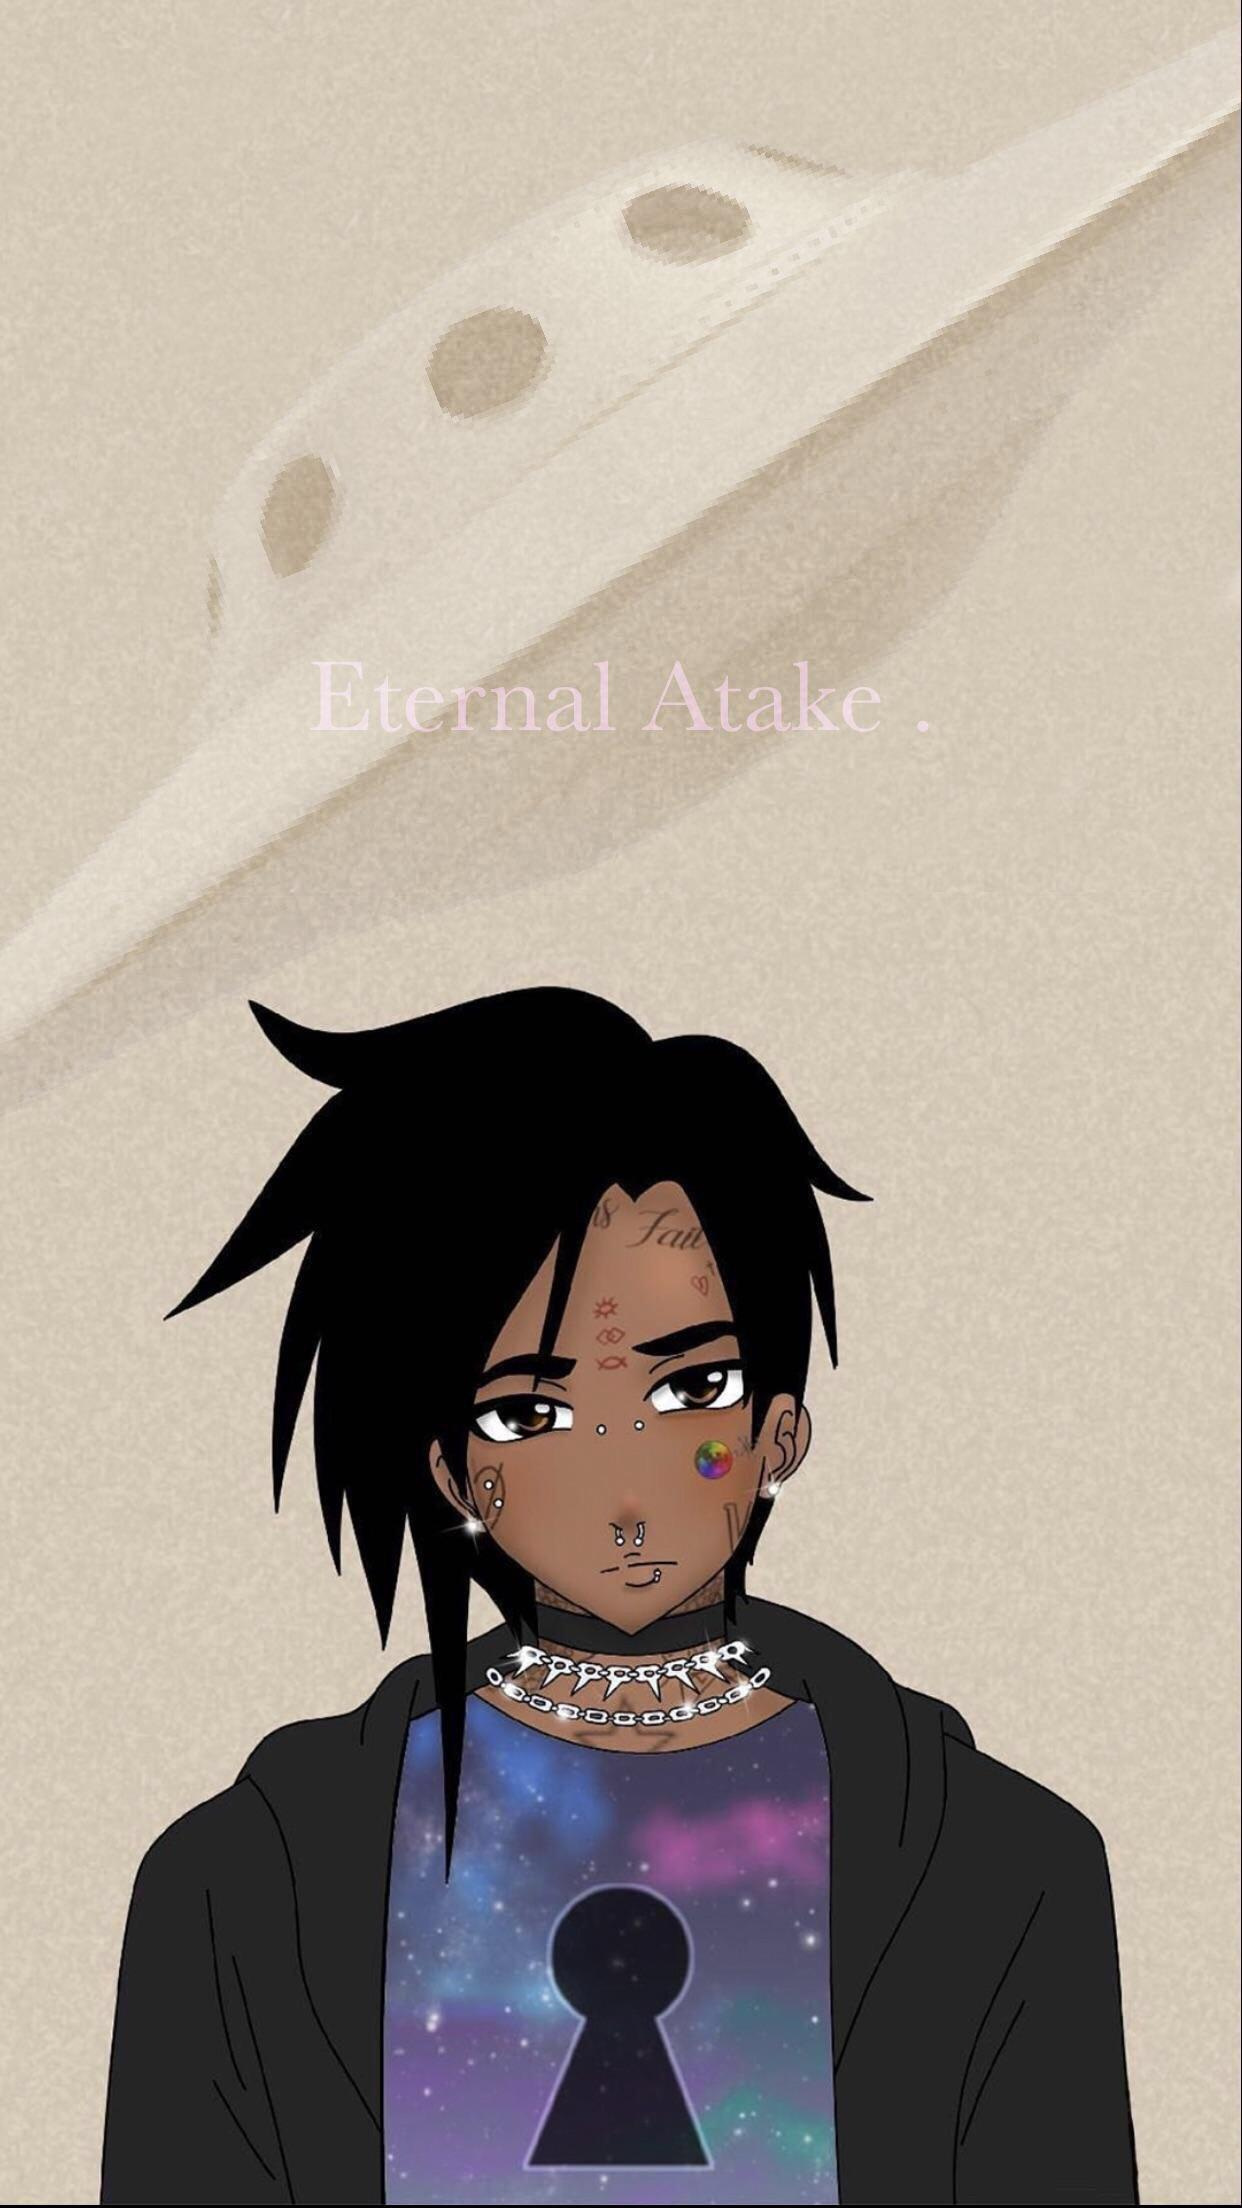 Lil Uzi Vert Anime Wallpapers Wallpaper Cave Choose from 110+ lil uzi vert graphic resources and download in the form of png, eps, ai or psd. lil uzi vert anime wallpapers